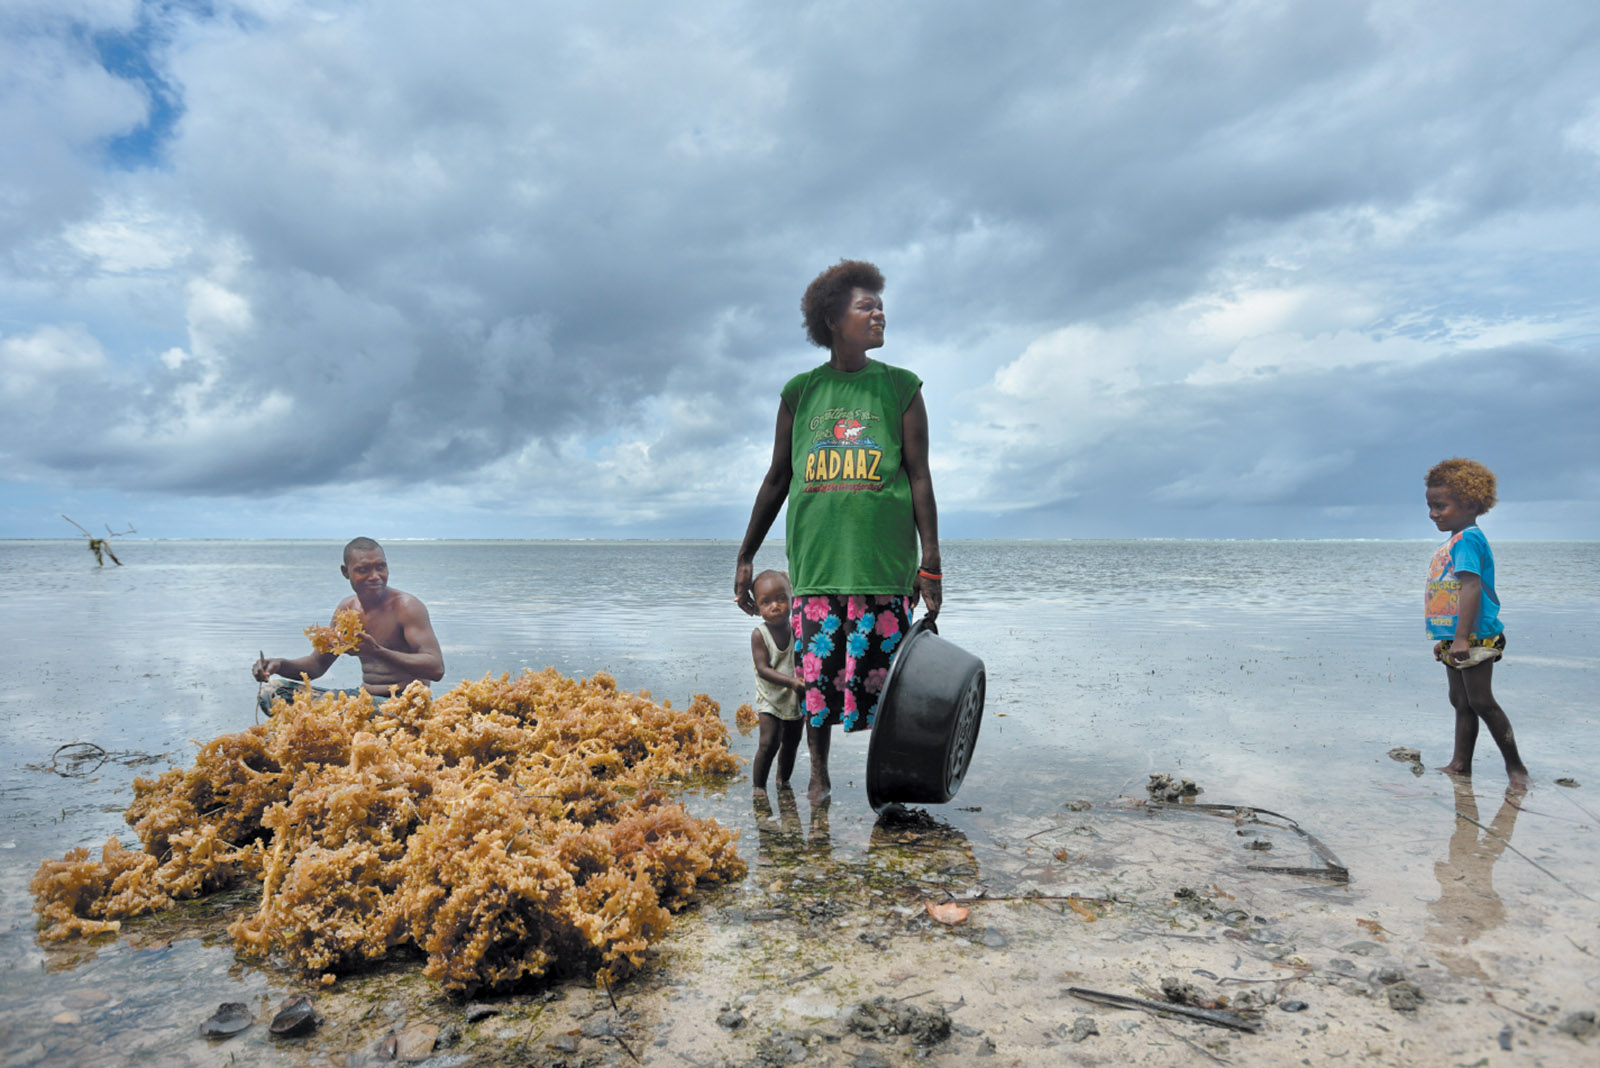 Papua New Guineans gathering seaweed for income in the Cartaret Islands, where rising sea levels are destroying their crops and drinking water, May 2013